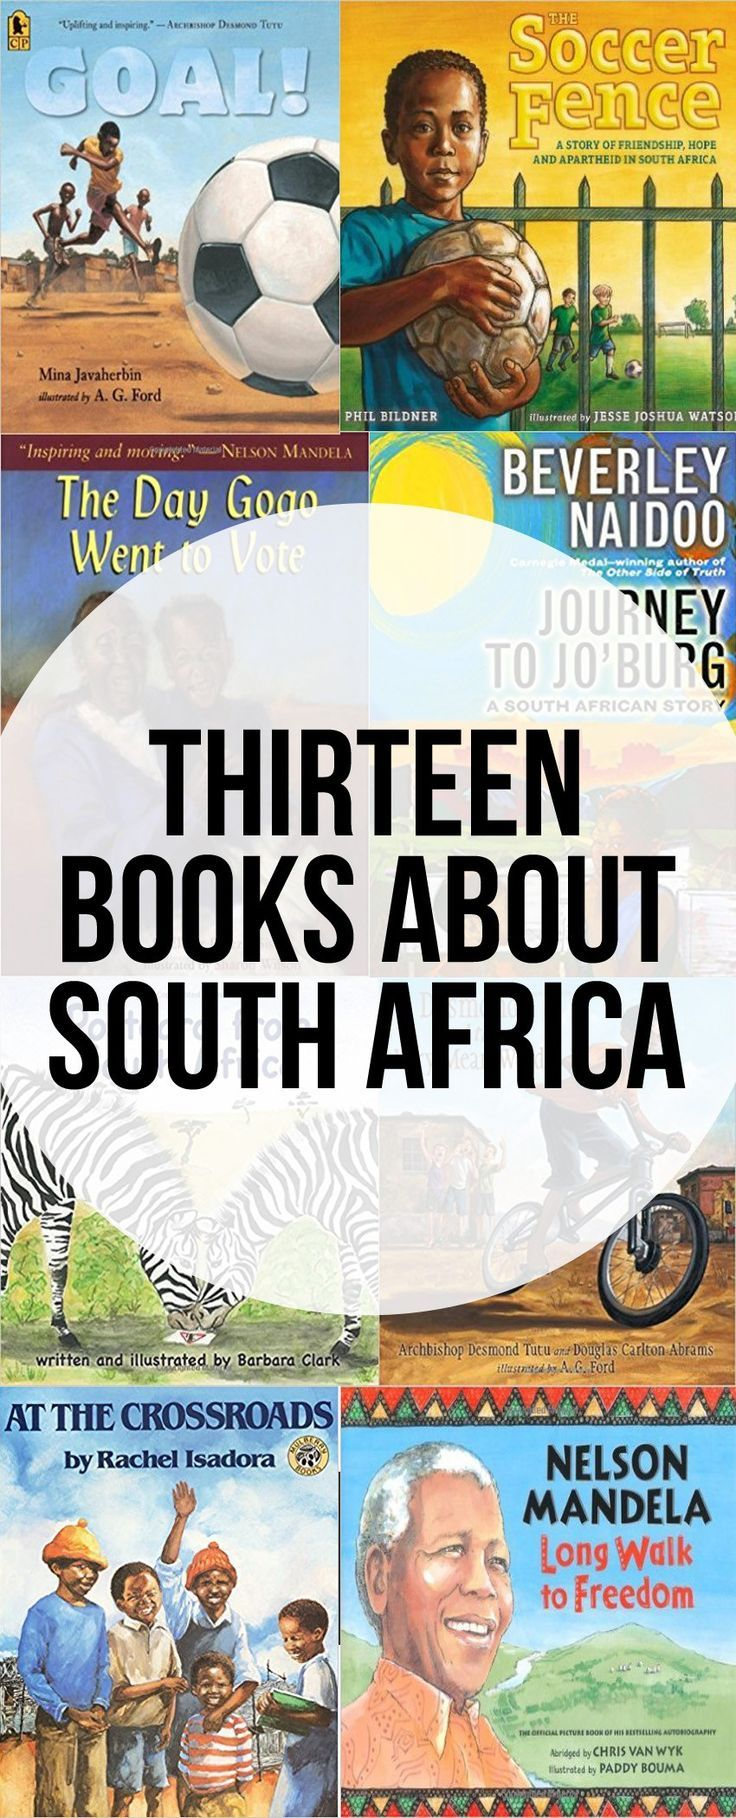 13 Children's Books About South Africa